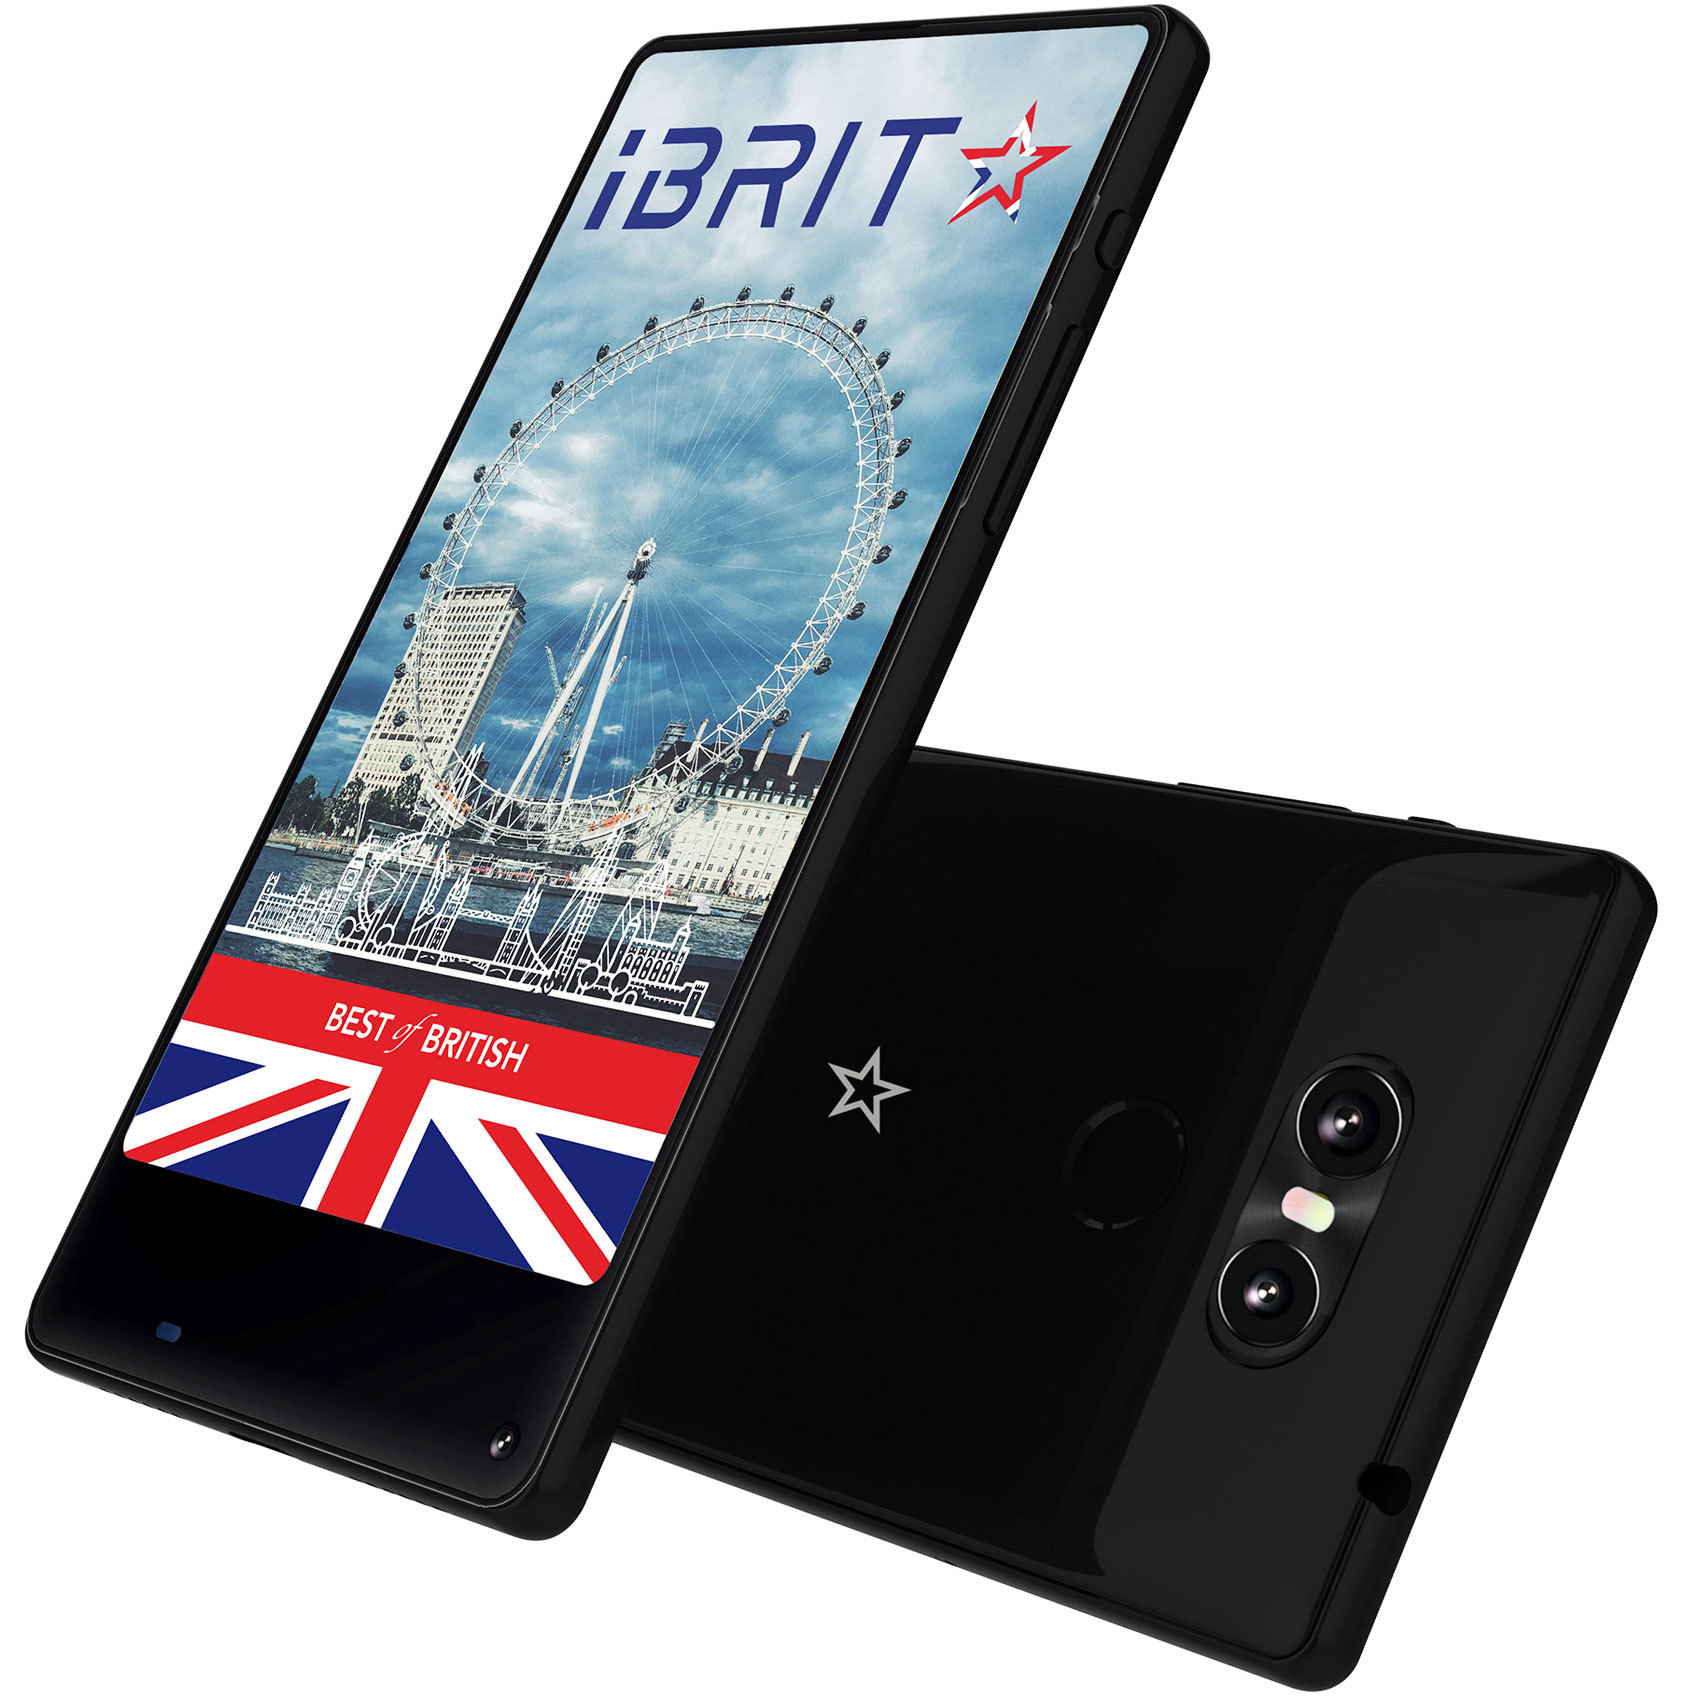 Buy Ibrit Horizon Dual Sim 4g 32gb Black Online In Uae